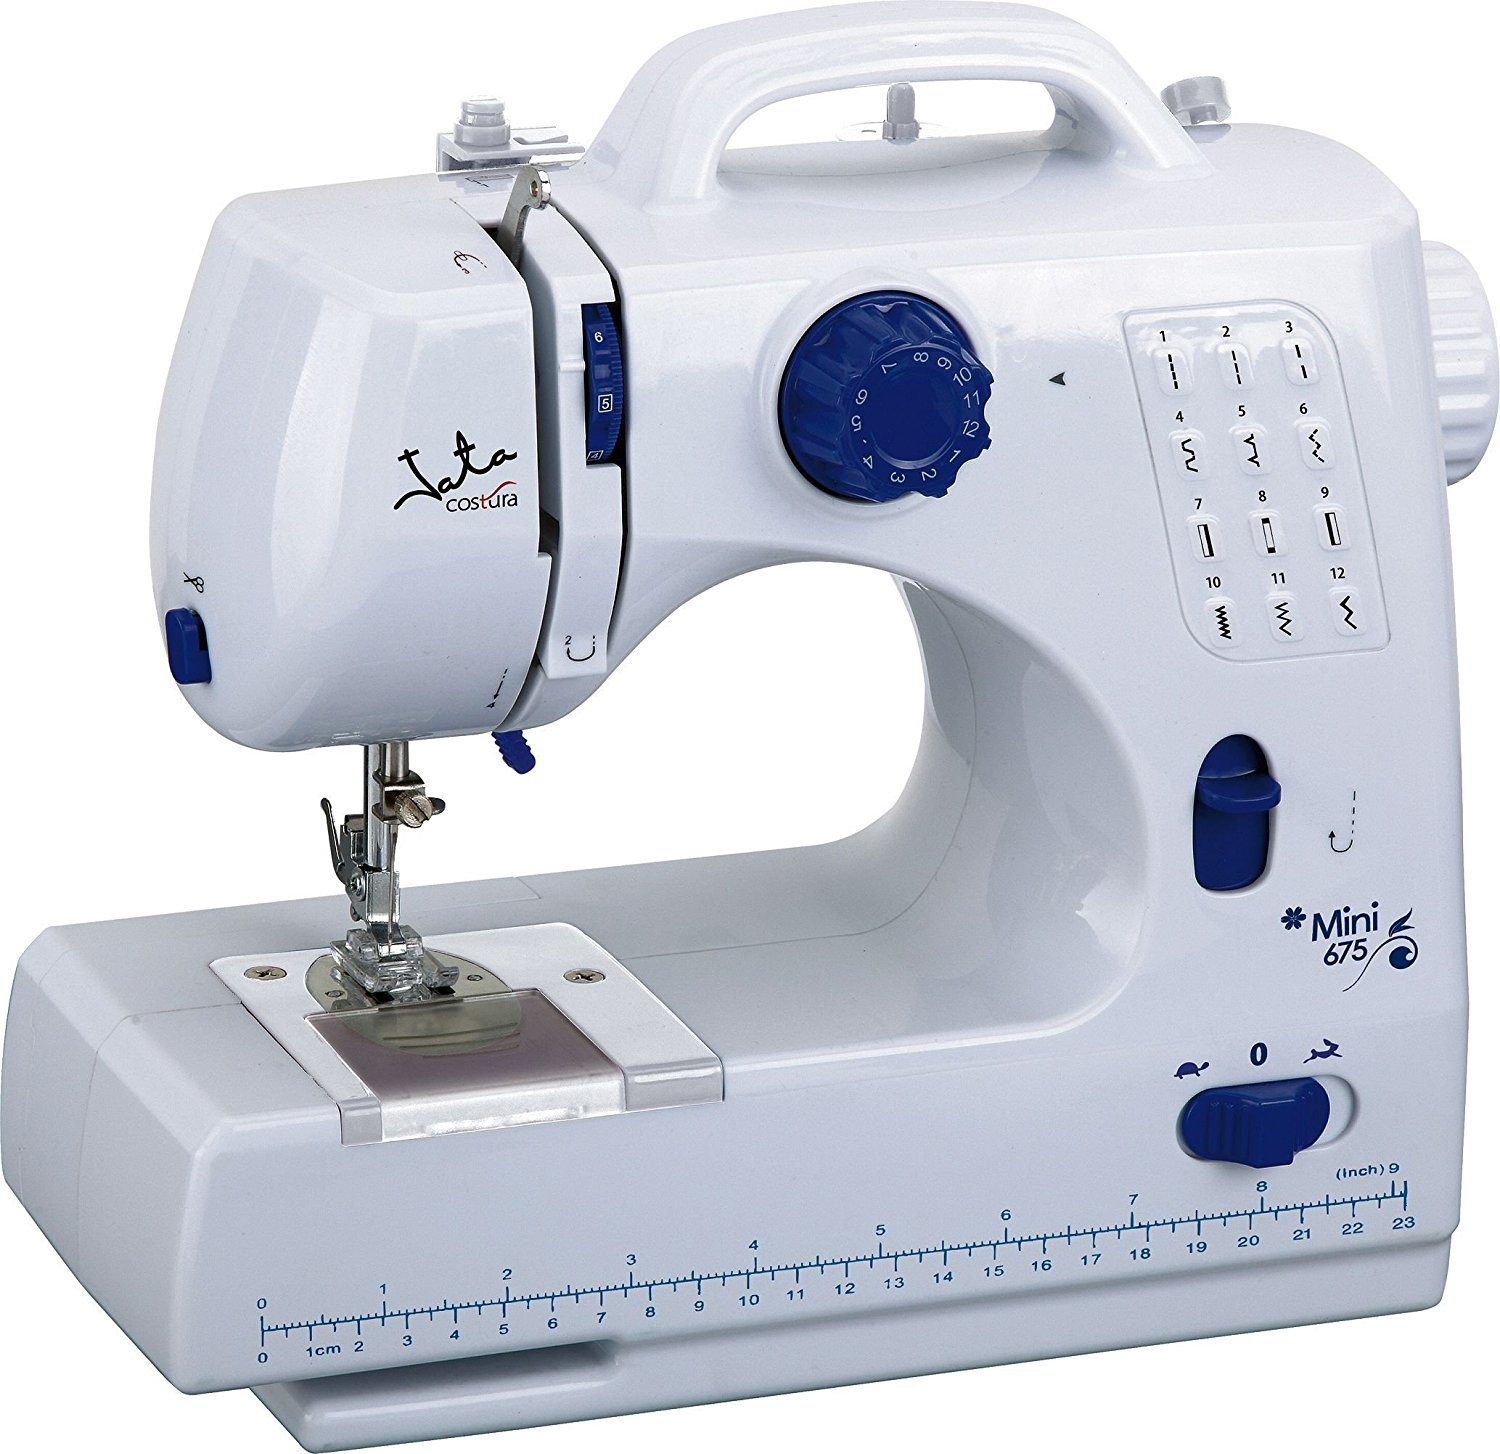 Máy may    Levivo No1 Overlock Sewing Machine with 4 String System